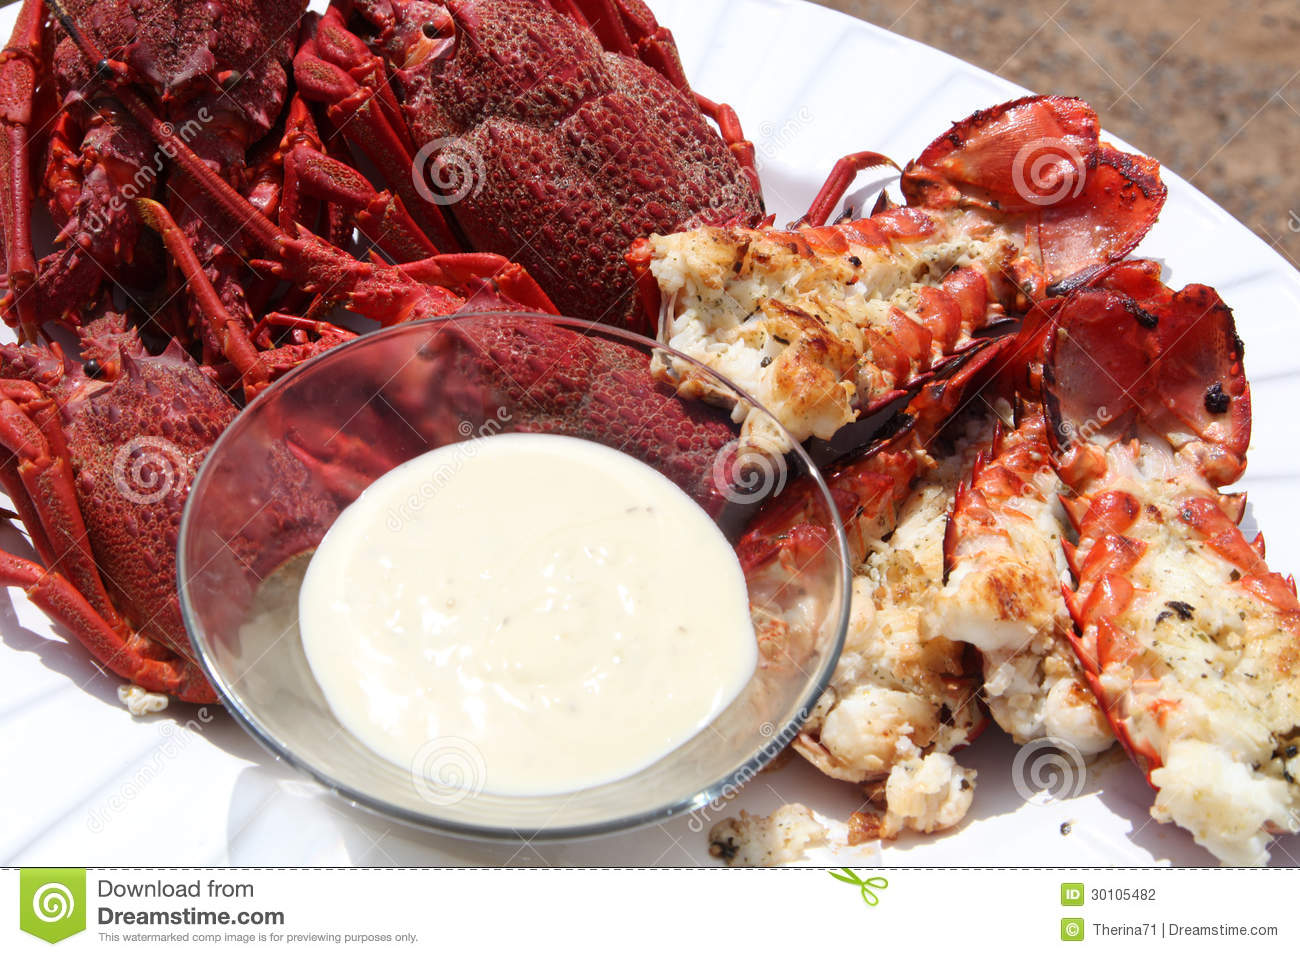 Steamed crayfish with a creamy dip served as a starter.